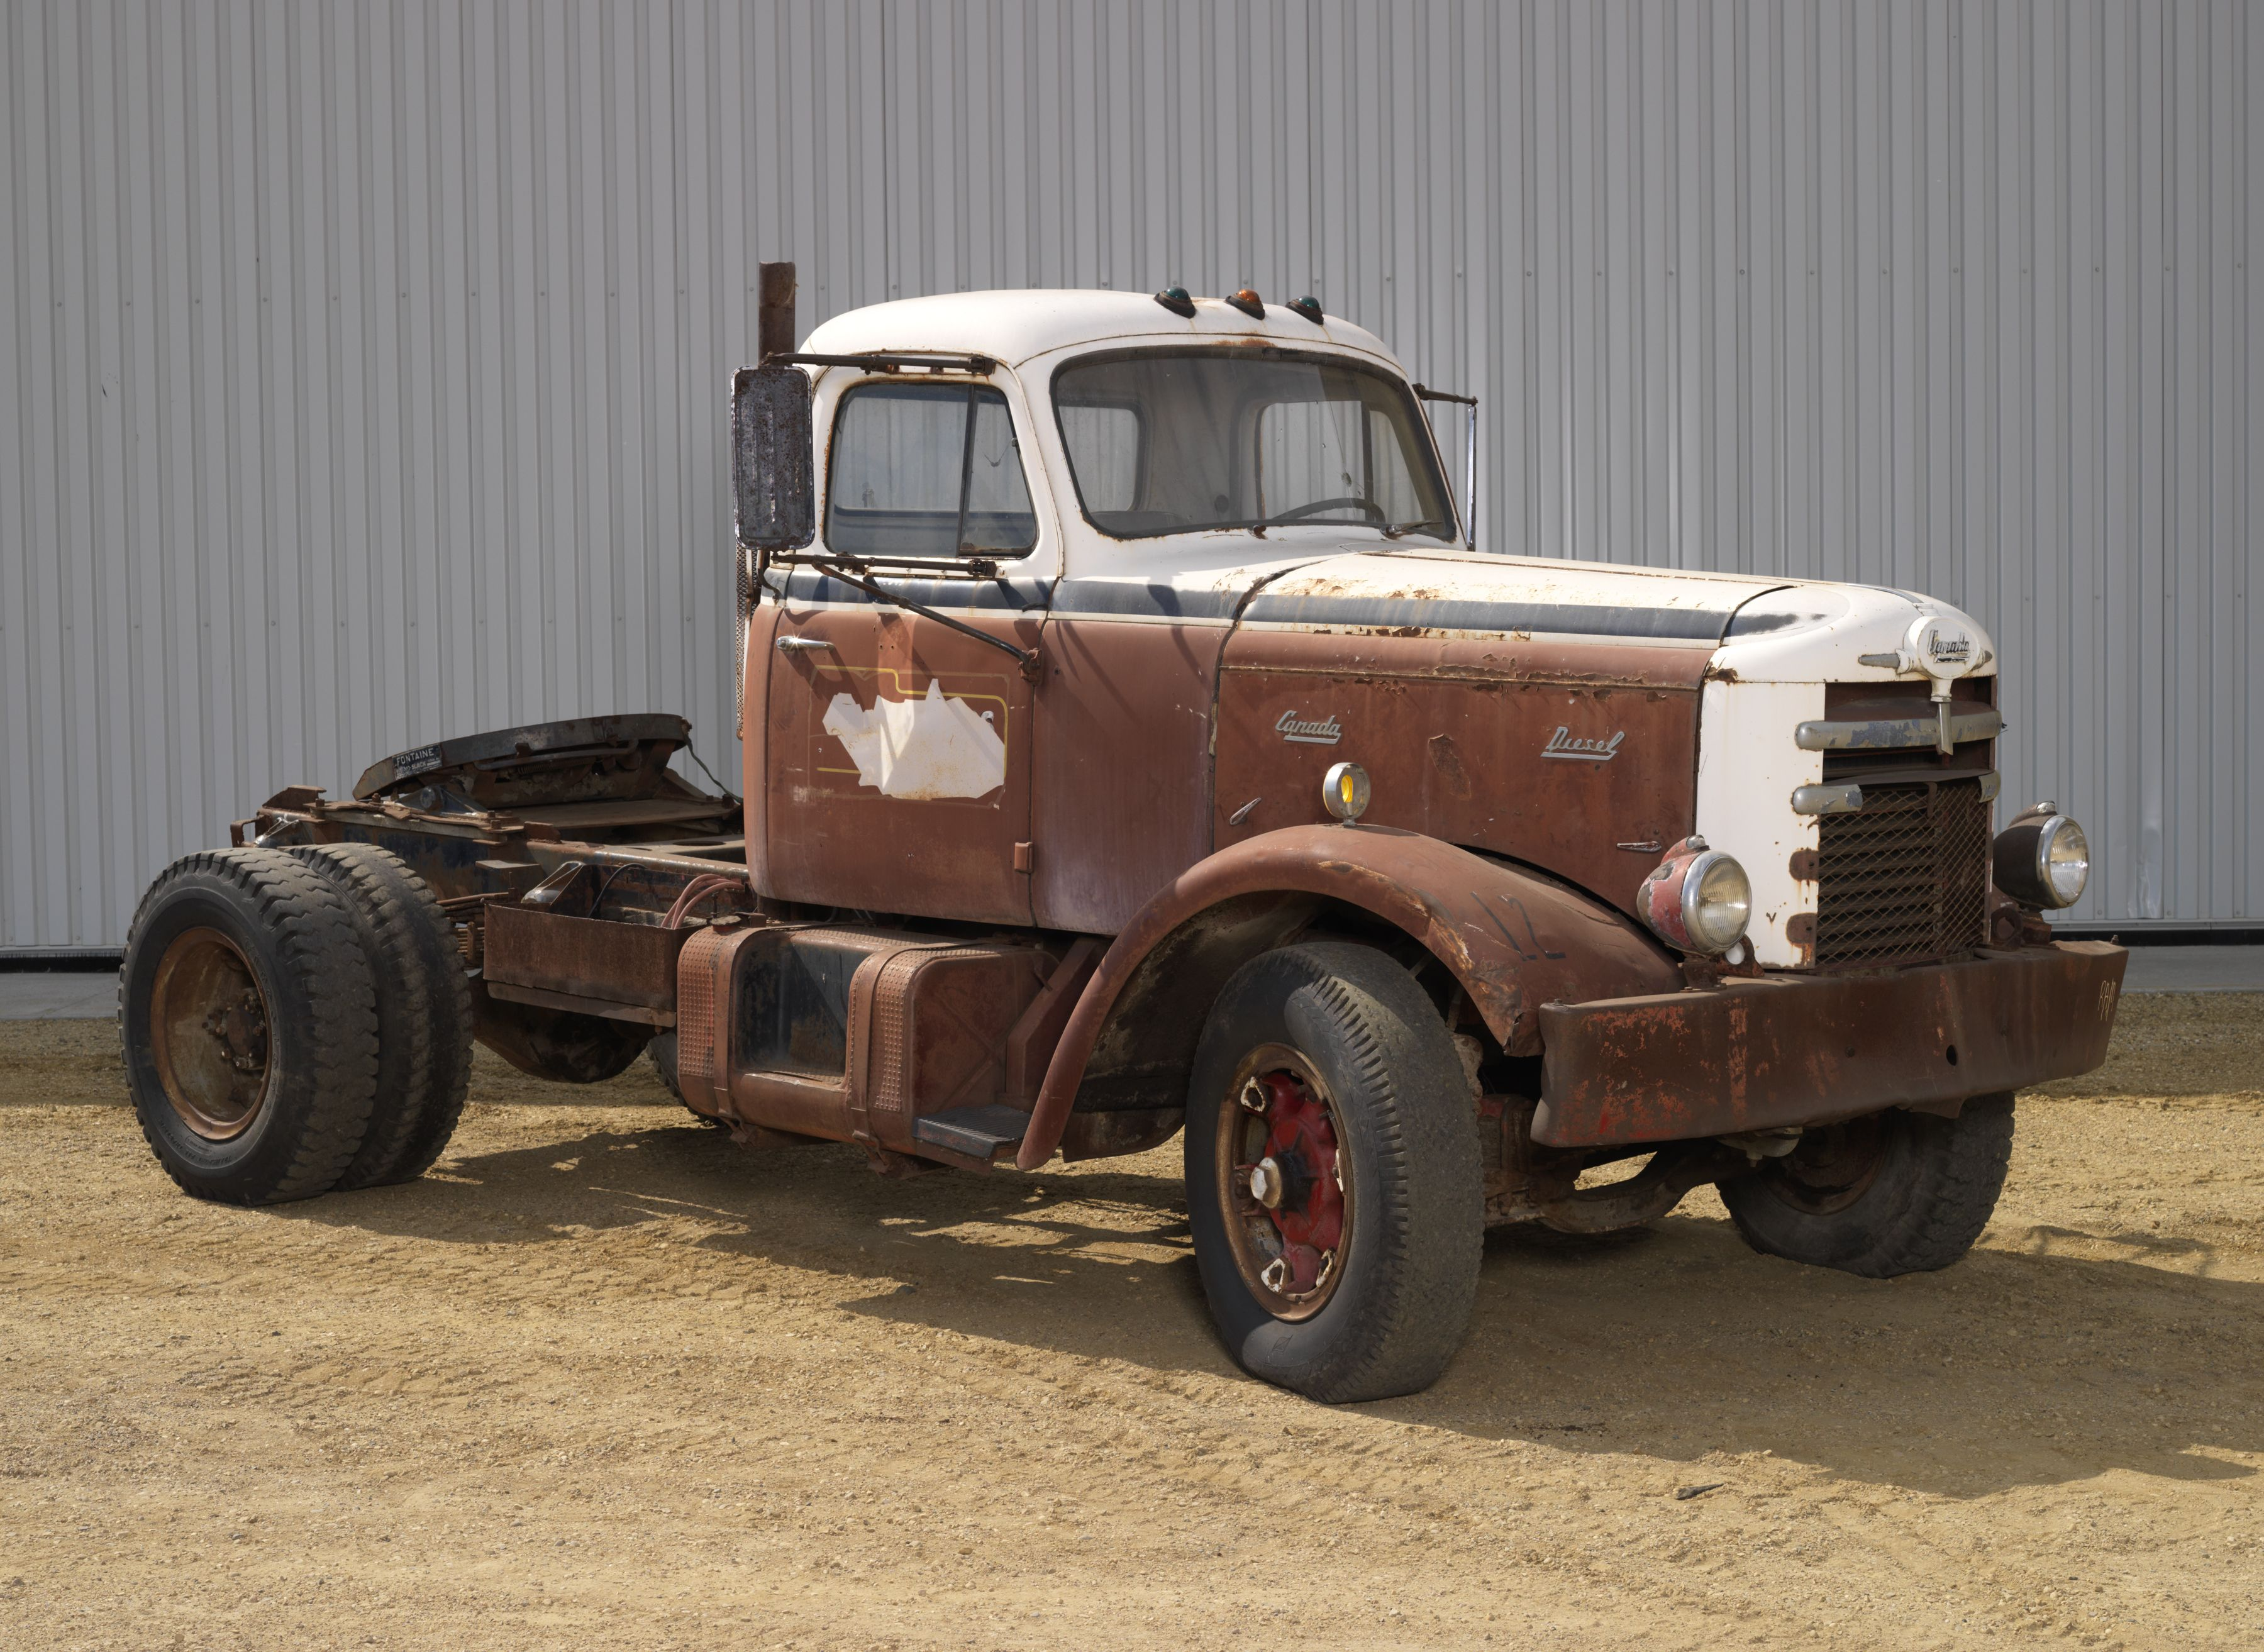 1958 CANADA TRACTOR TRUCK A joint effort of Leyland